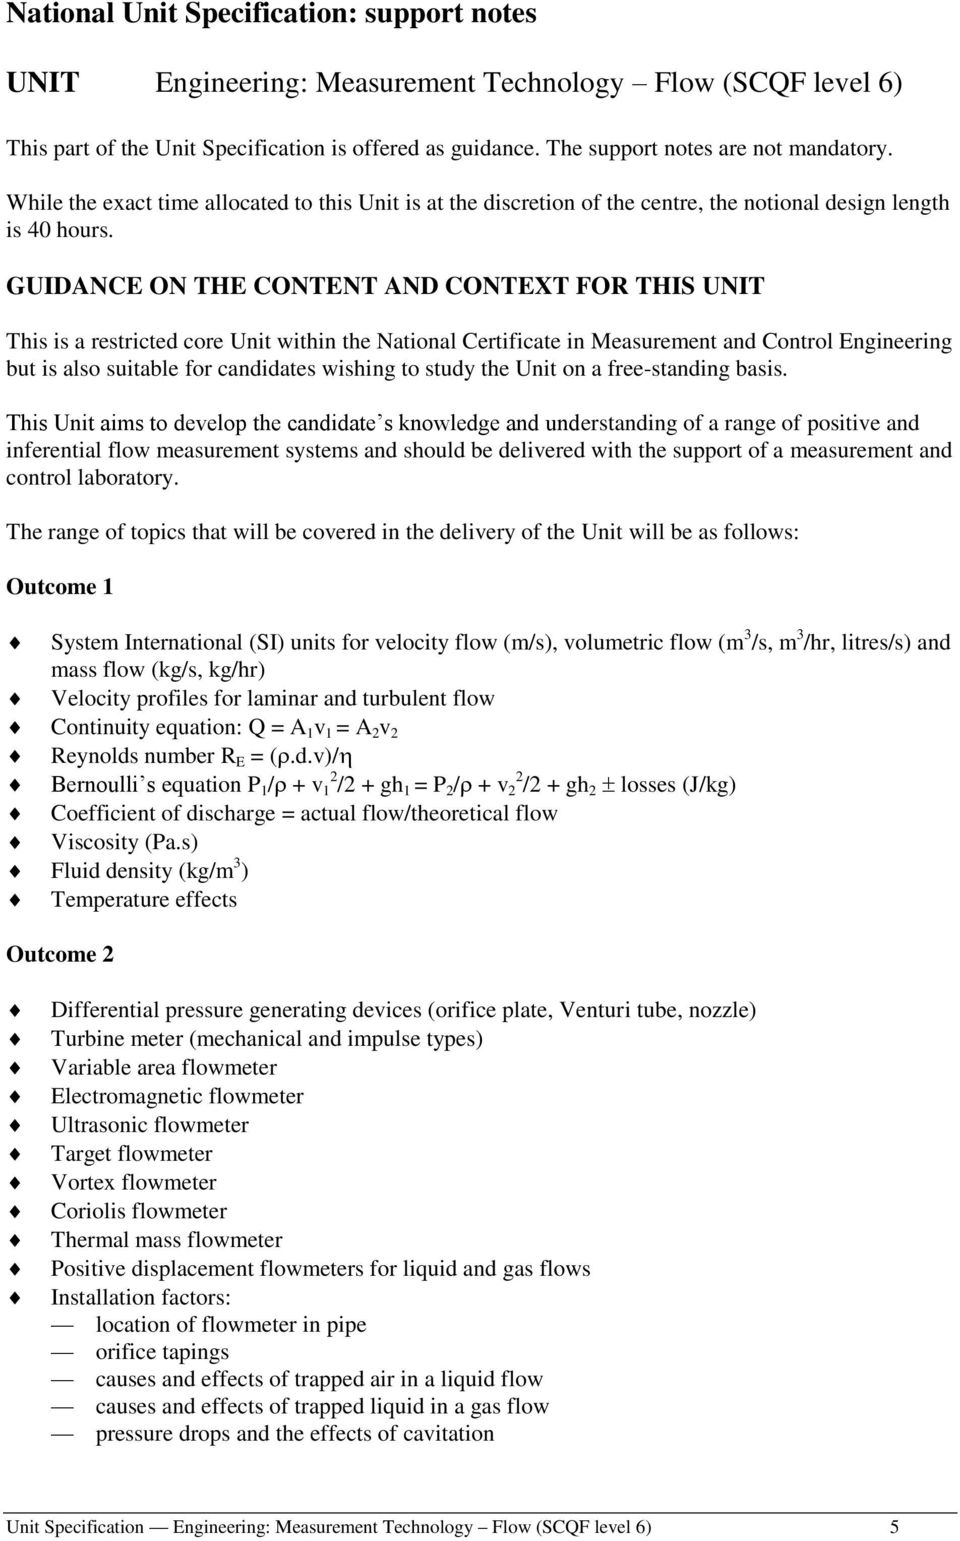 GUIDANCE ON THE CONTENT AND CONTEXT FOR THIS UNIT This is a restricted core Unit within the National Certificate in Measurement and Control Engineering but is also suitable for candidates wishing to